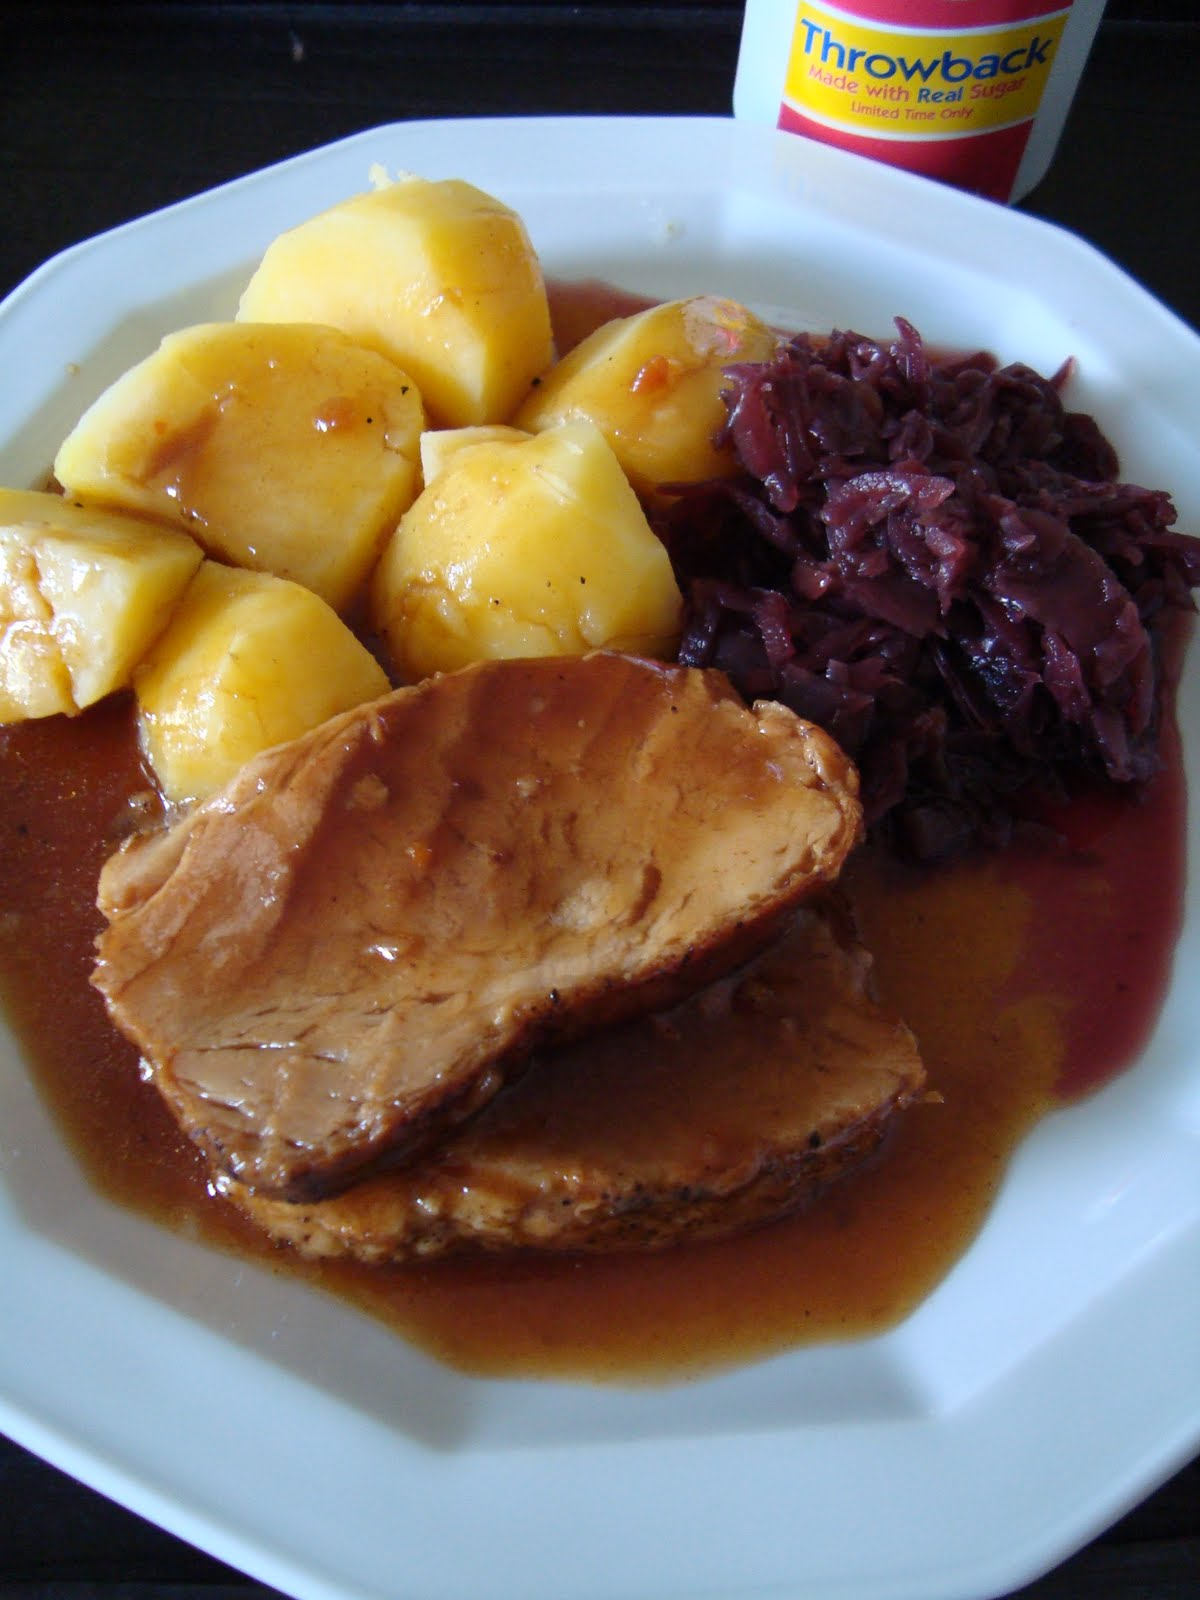 Lagerung Kartoffeln Temperatur Leonie 39s World Sunday Breakfast Und Tuesday German Braten